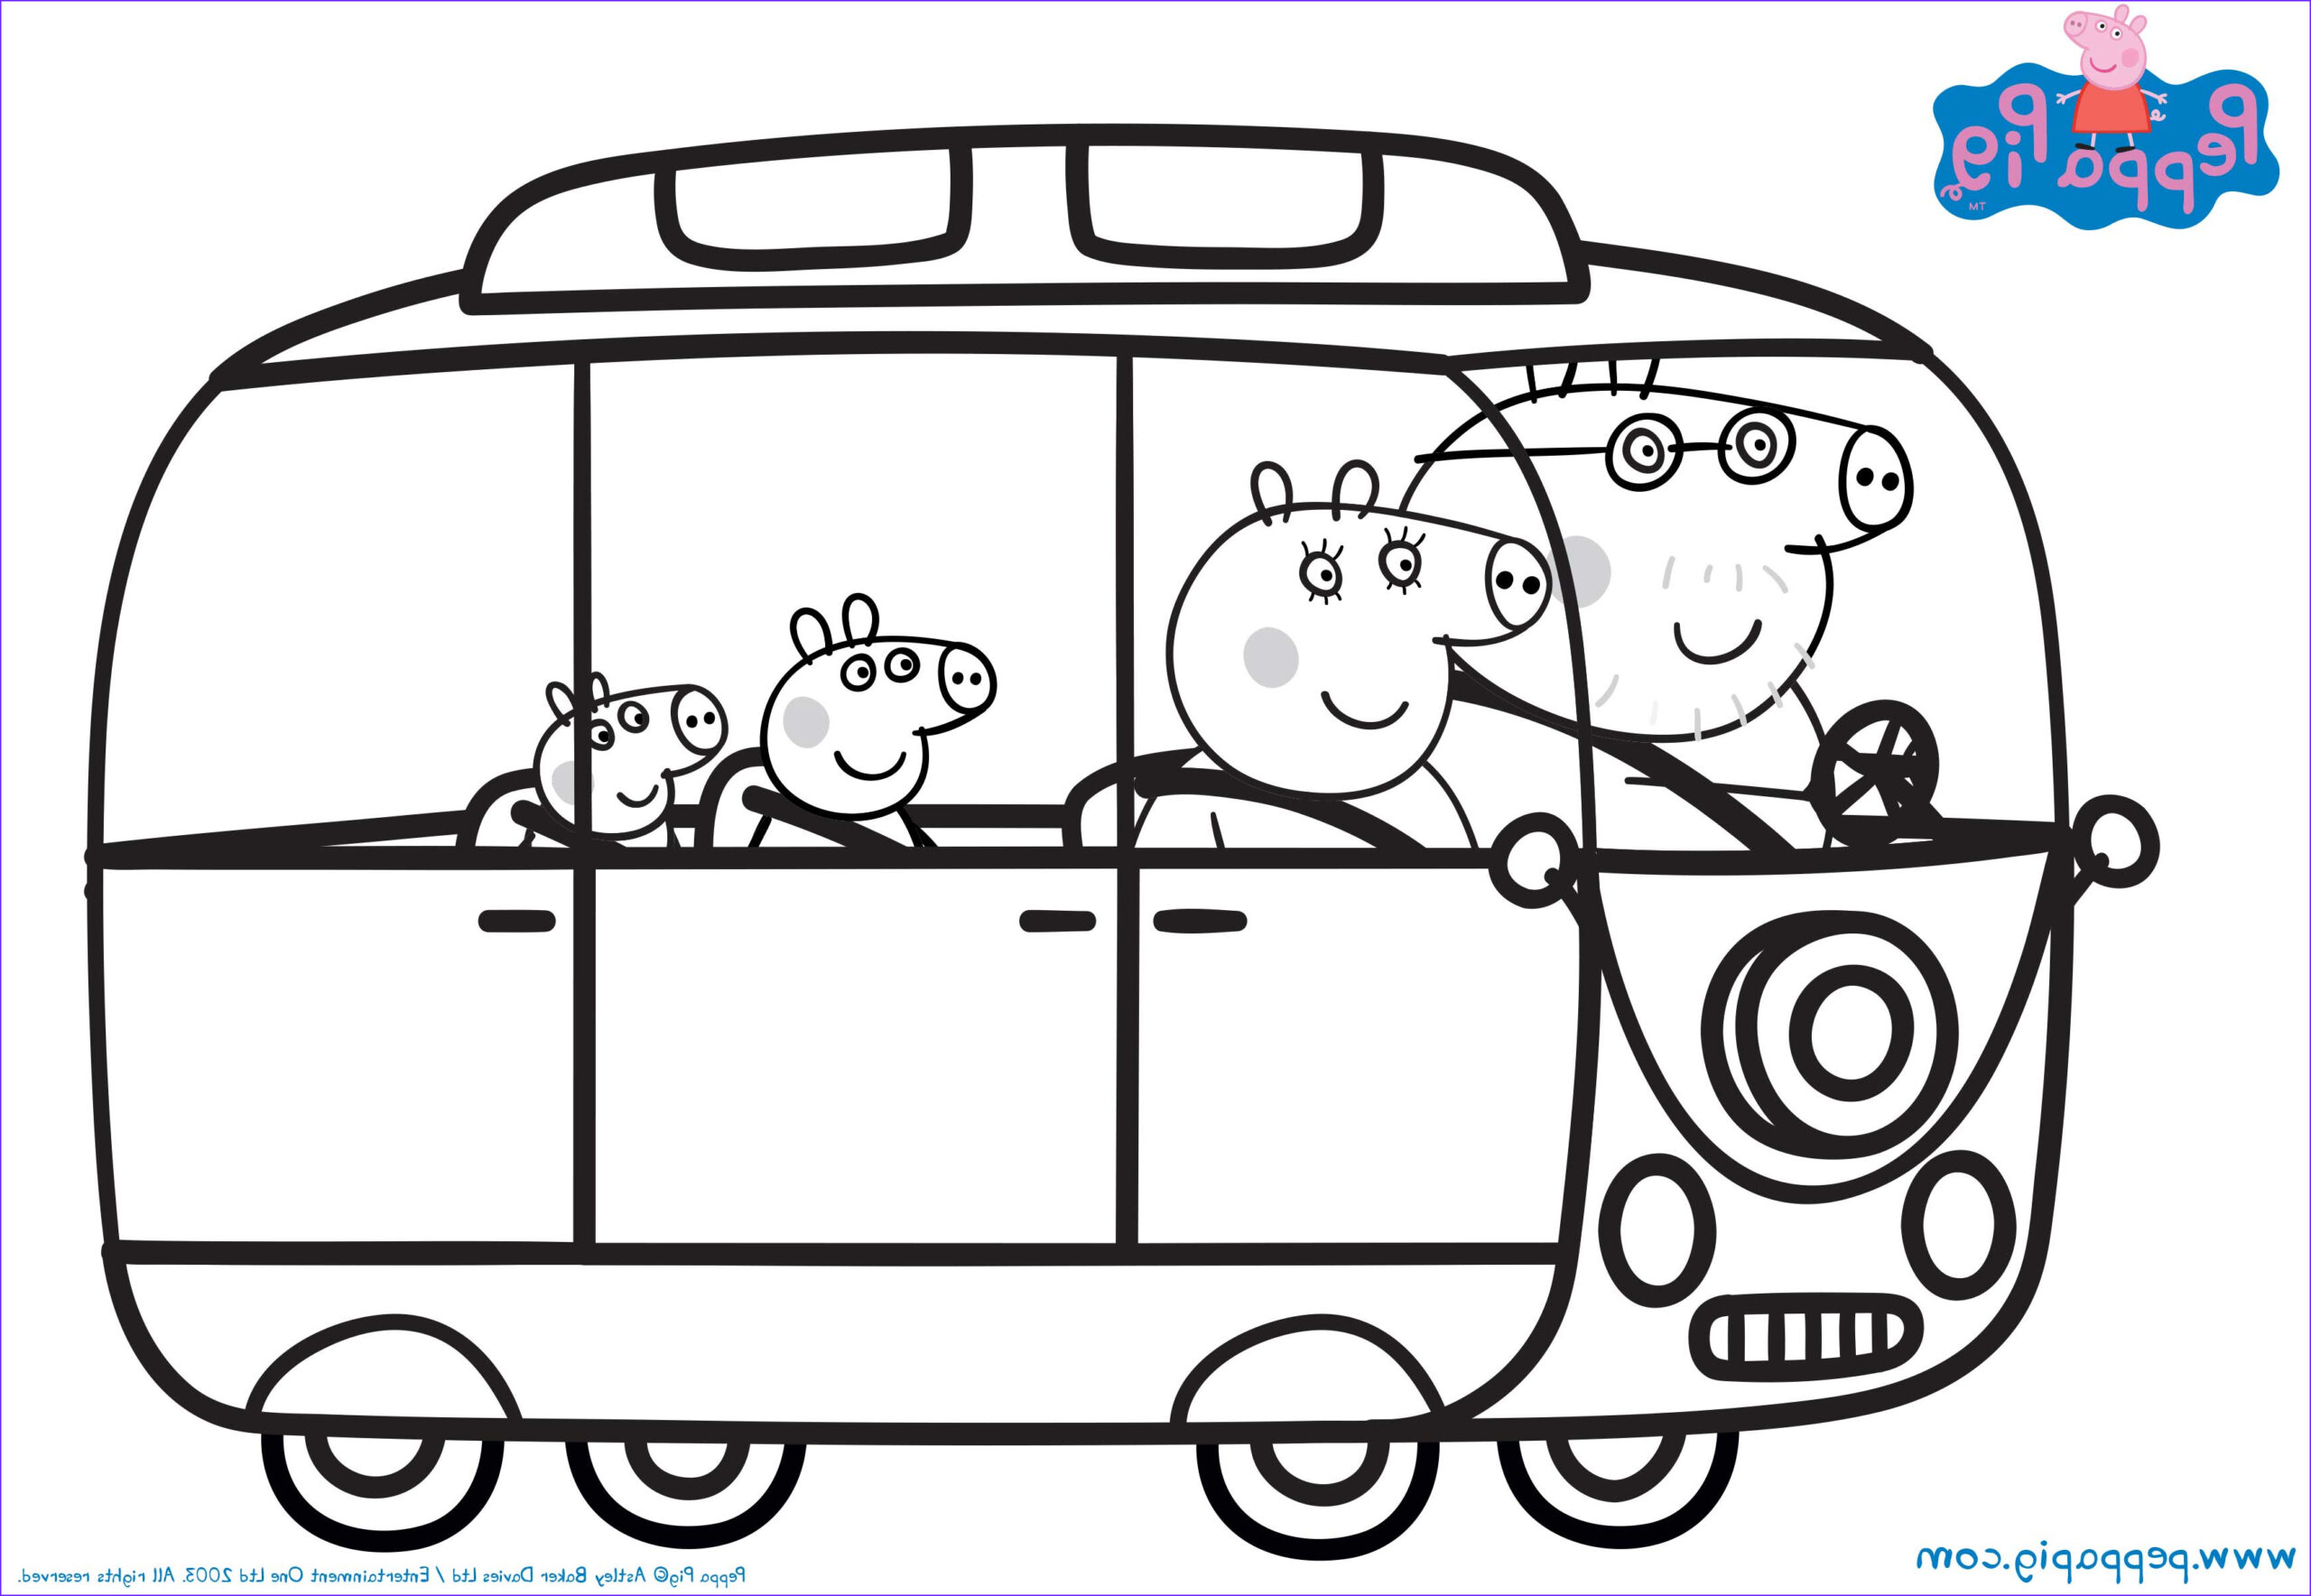 Peppa Pig Coloring Beautiful Stock Download Fun Activities and Color Ins to Print Out and